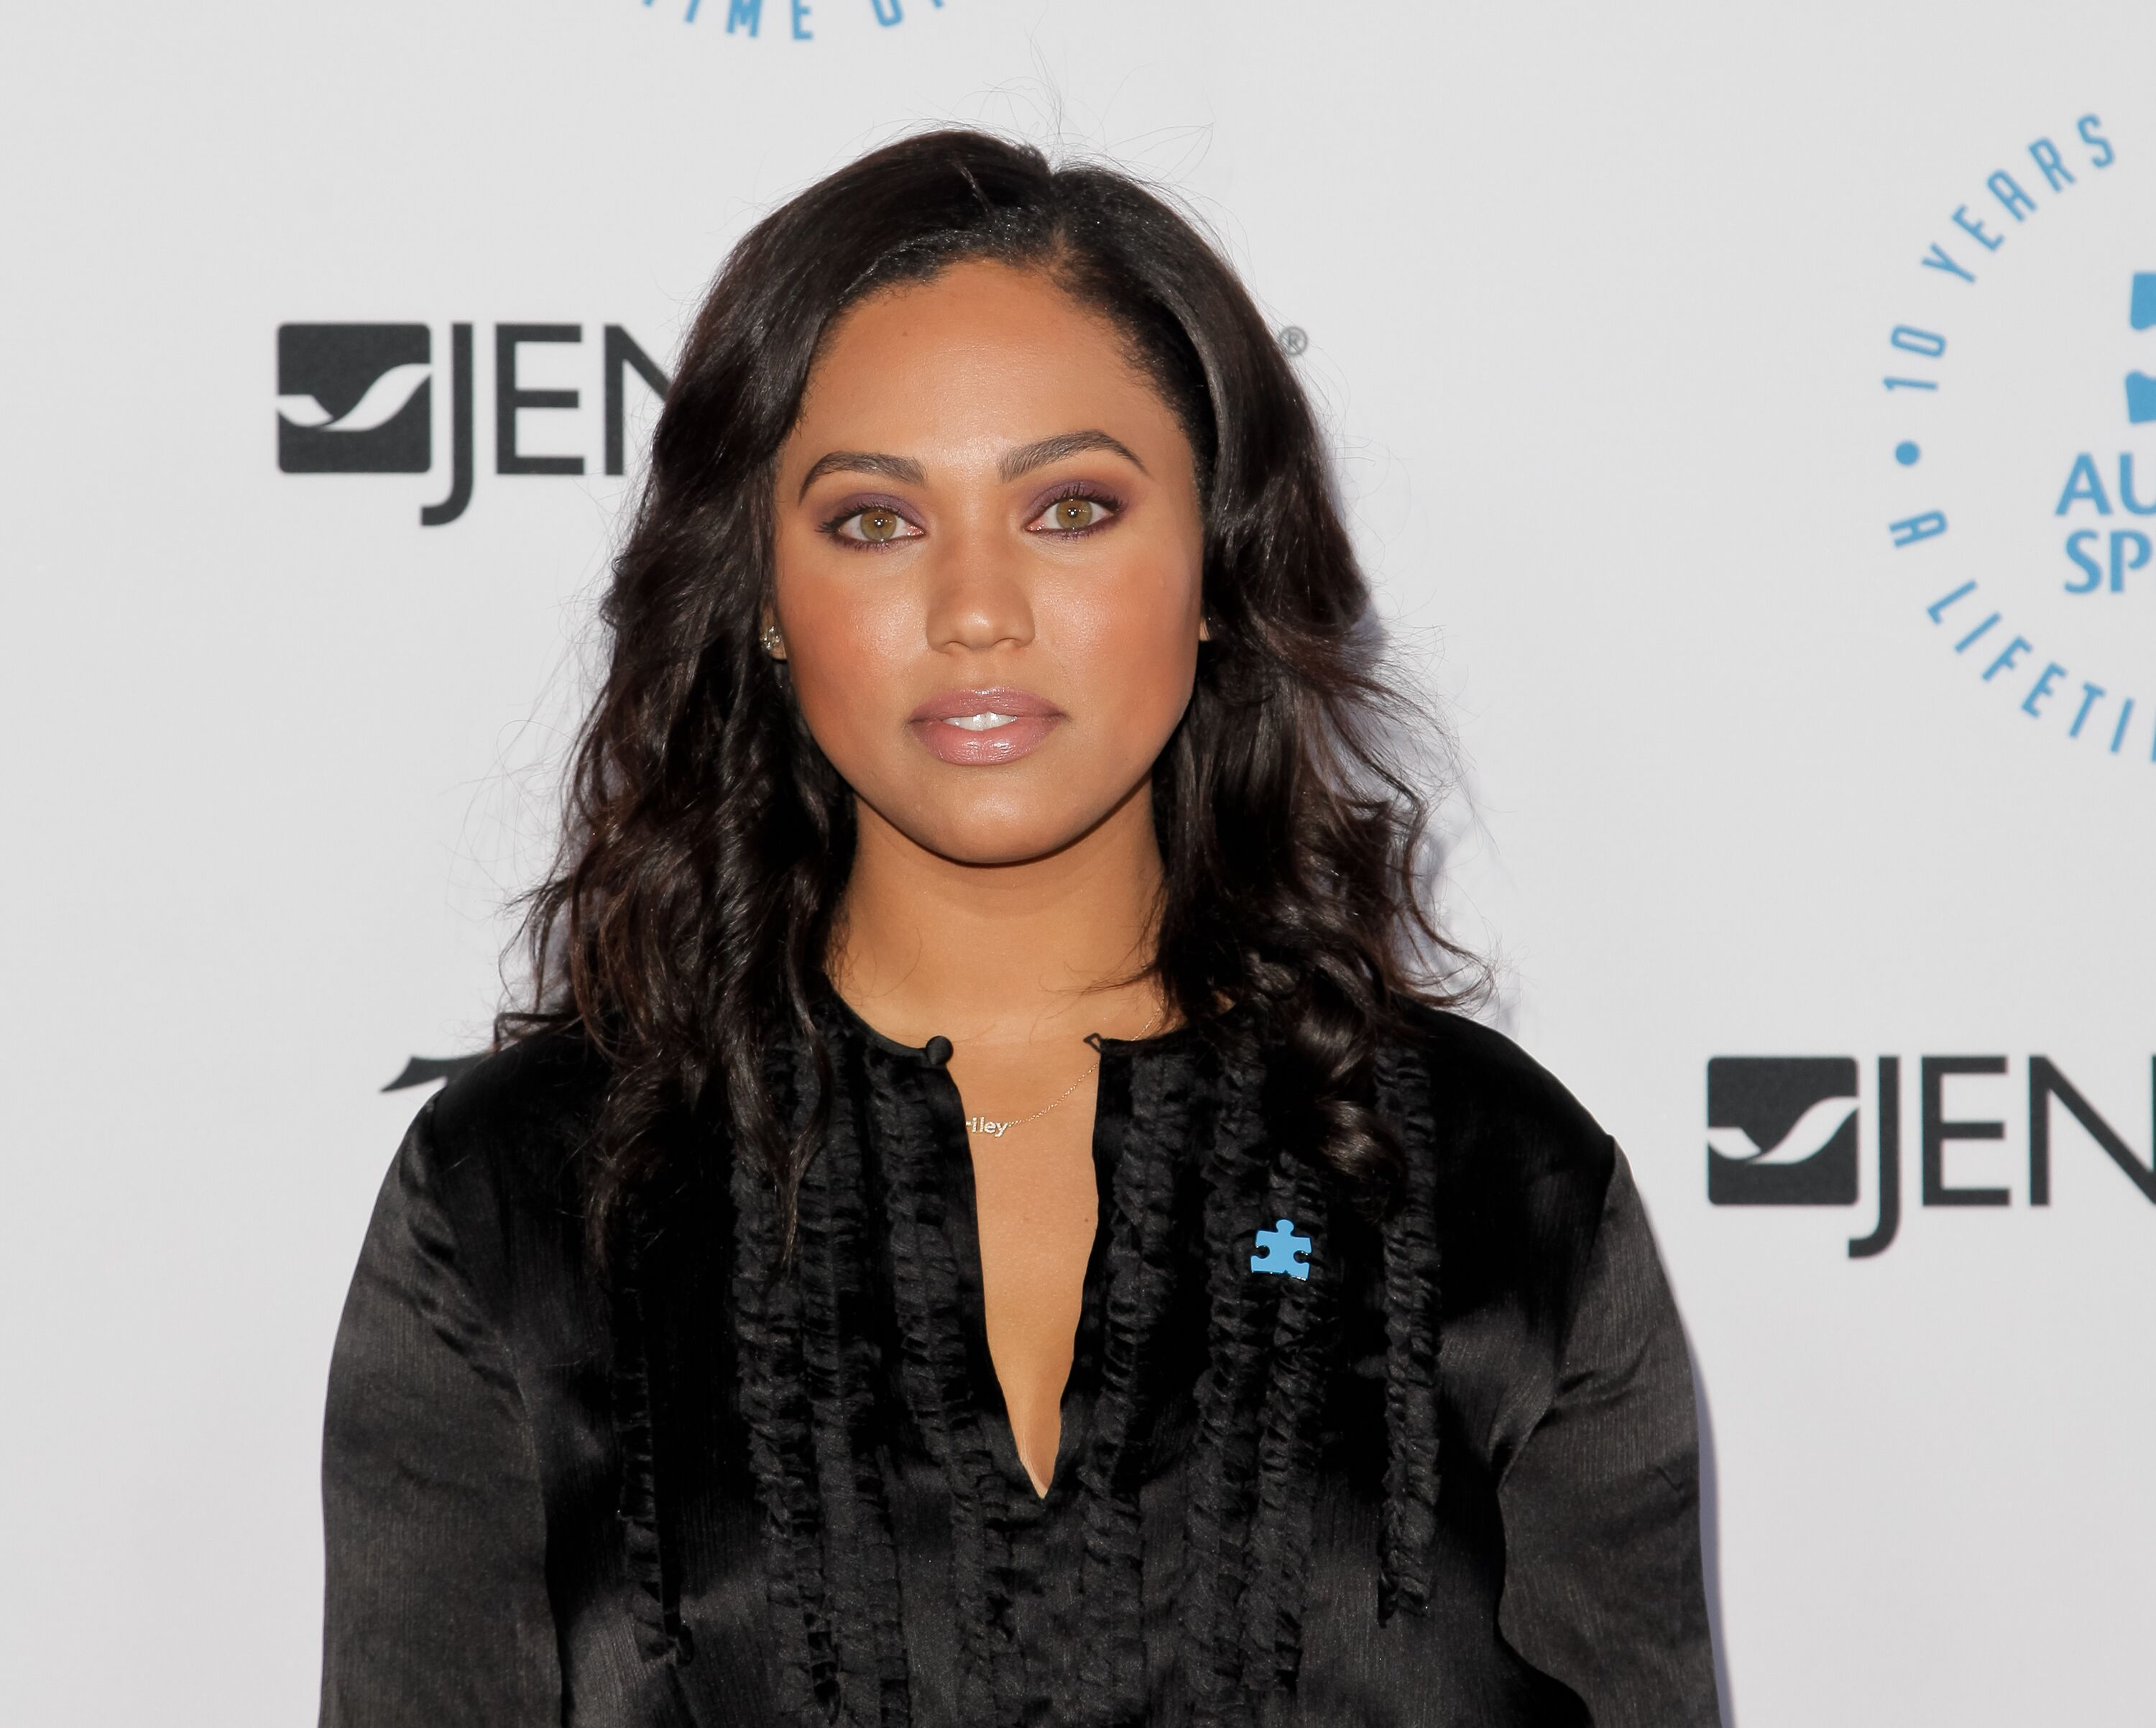 Ayesha Curry attends the Autism Speaks to Los Angeles Celebrity Chef Gala at Barker Hangar on October 8, 2015 in Santa Monica, California. | Photo: Getty Images